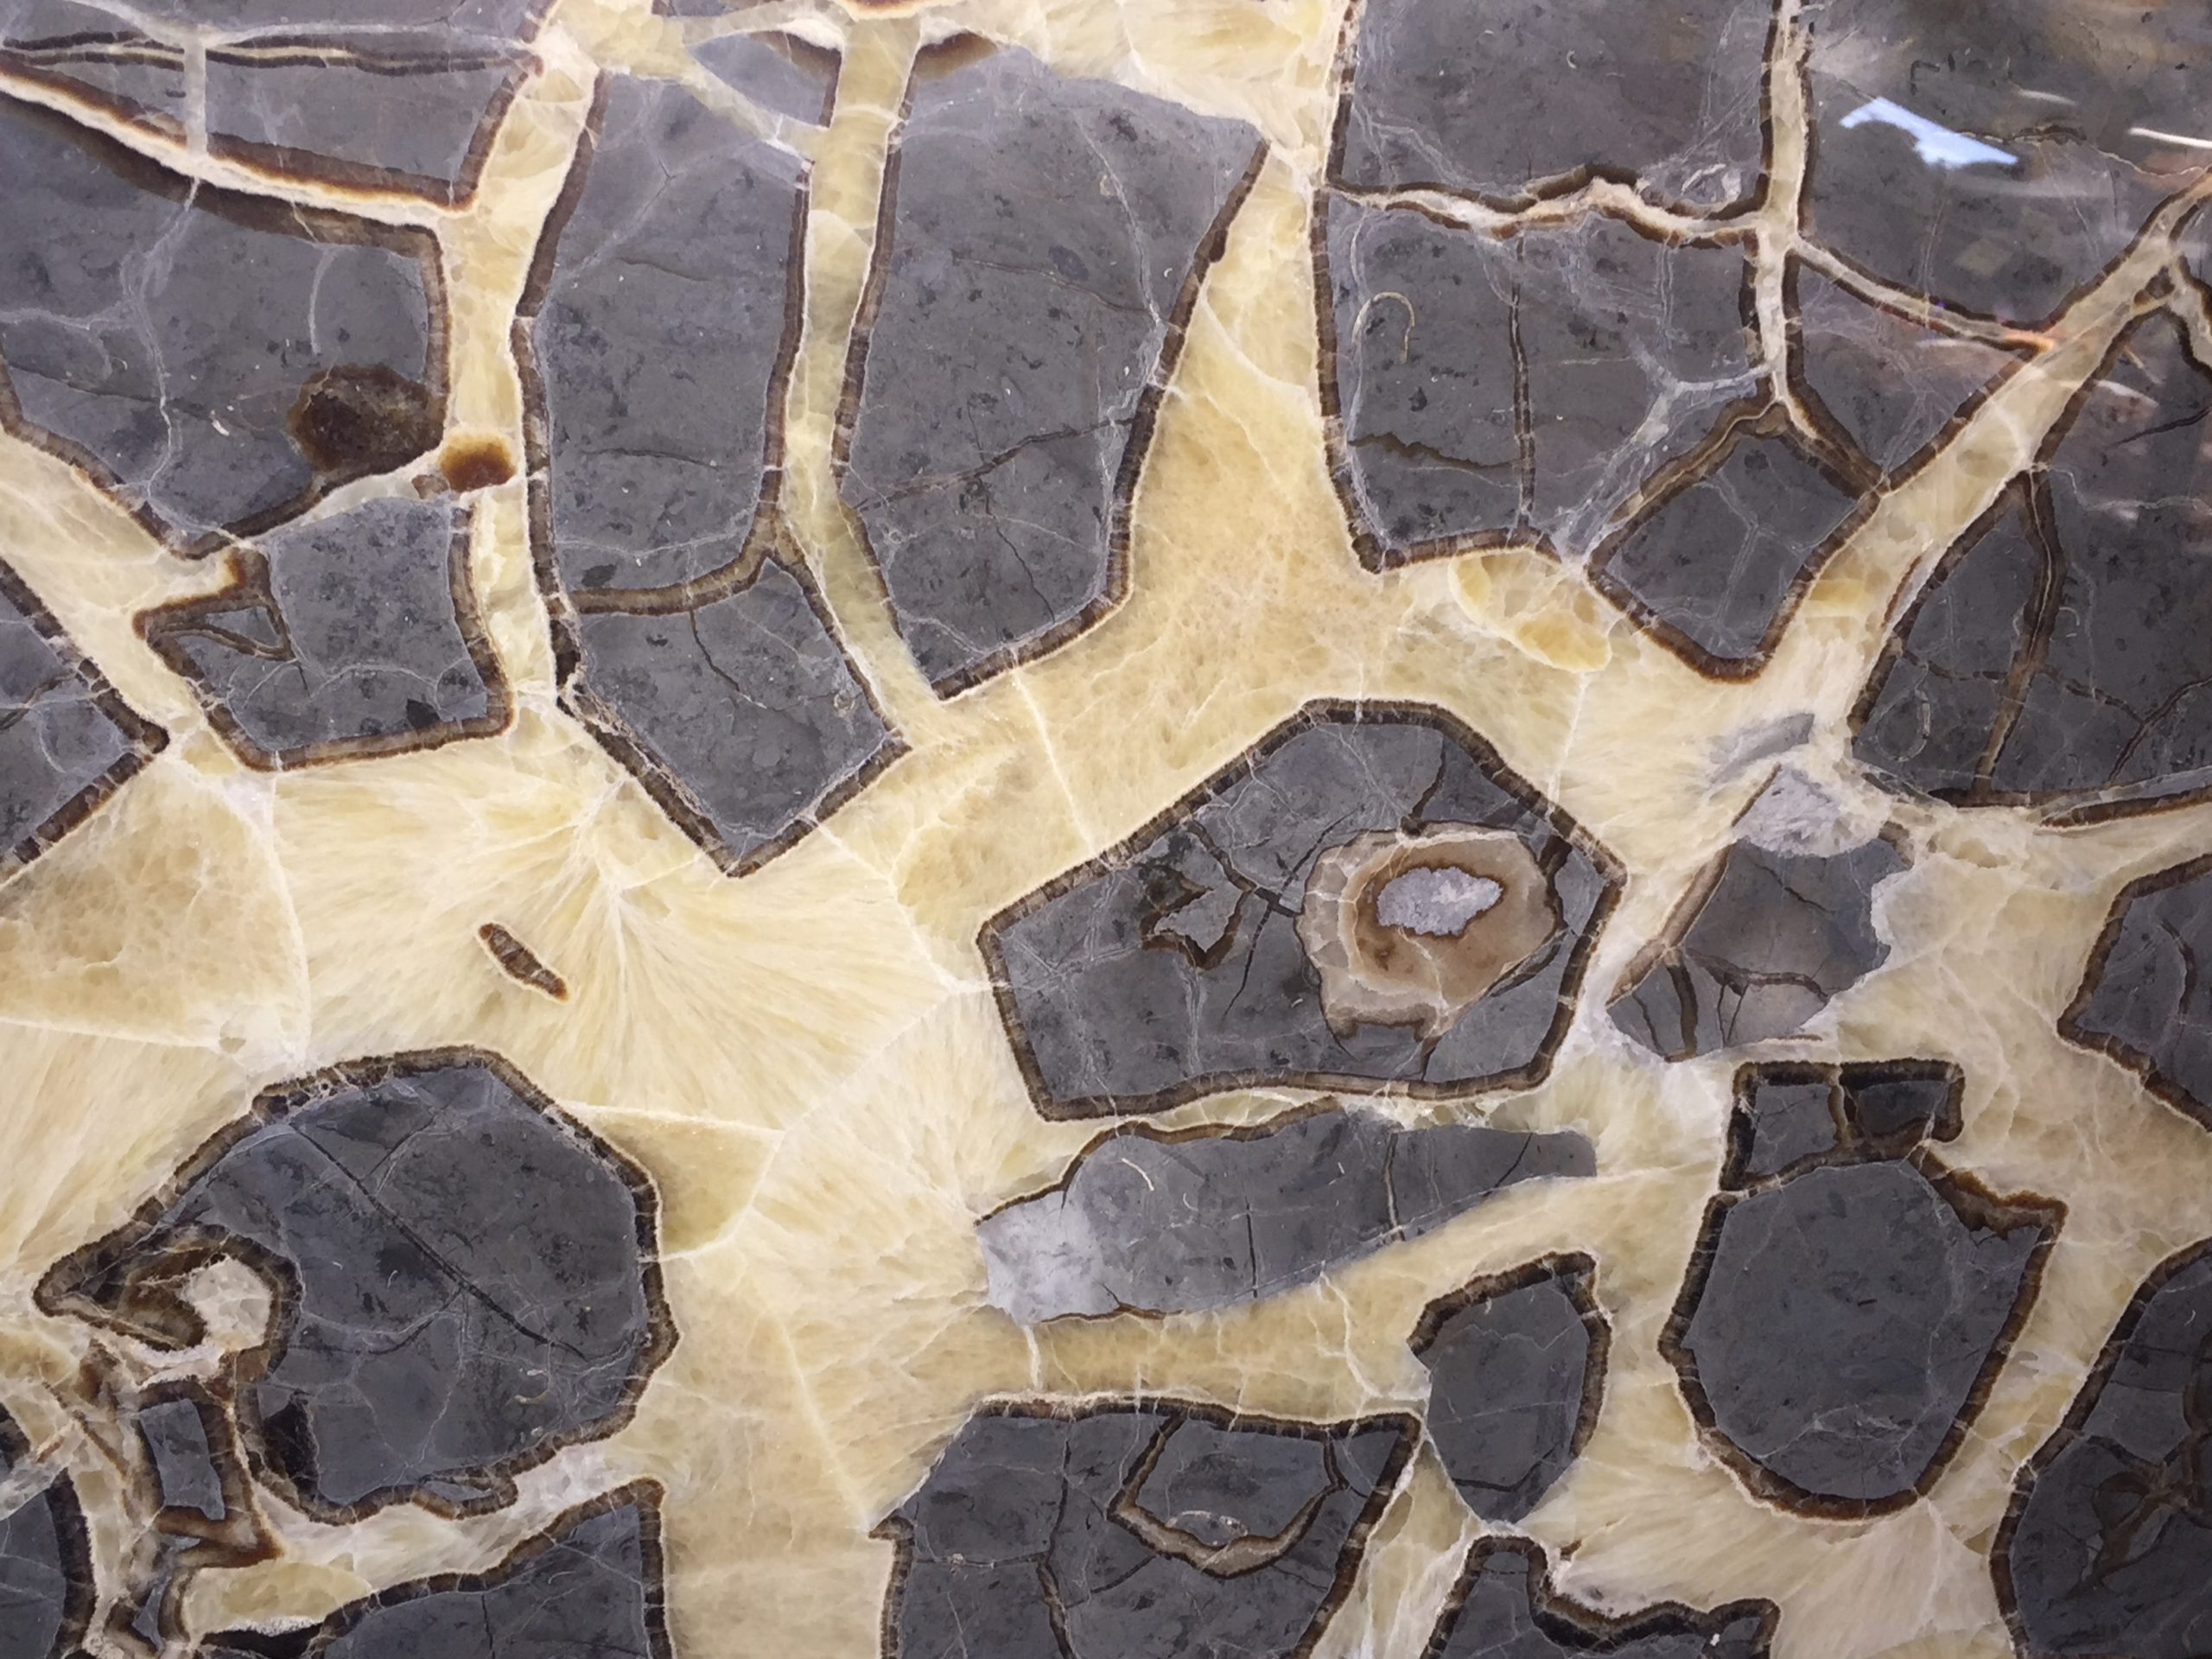 Septarian nodule close up